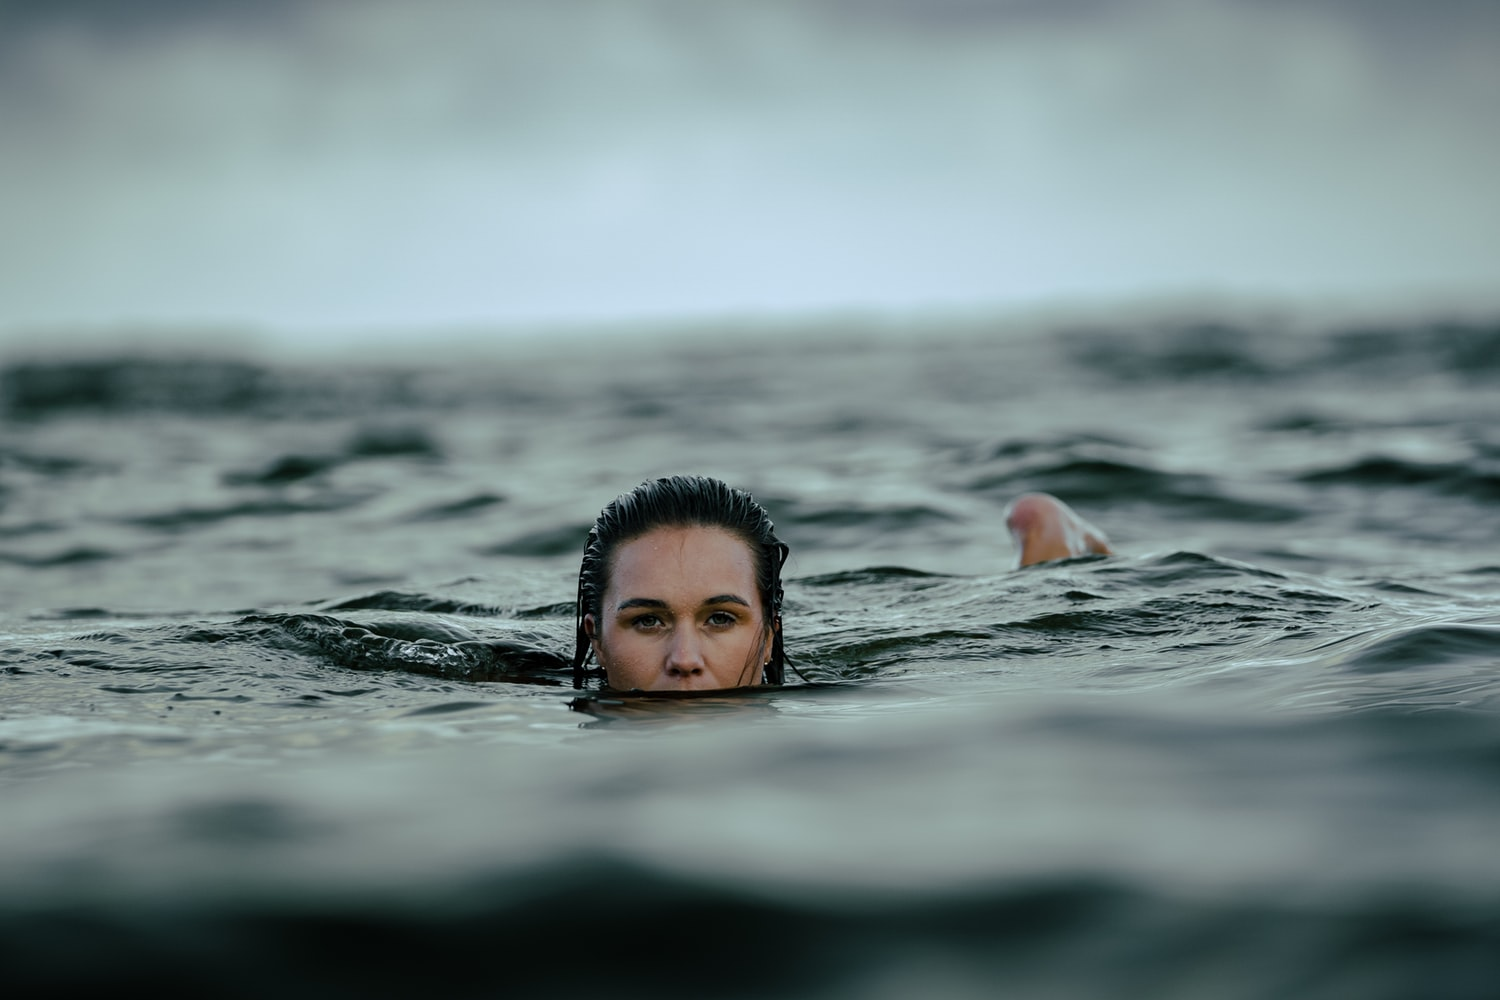 A woman's face trying to stay afloat in the middle of the ocean